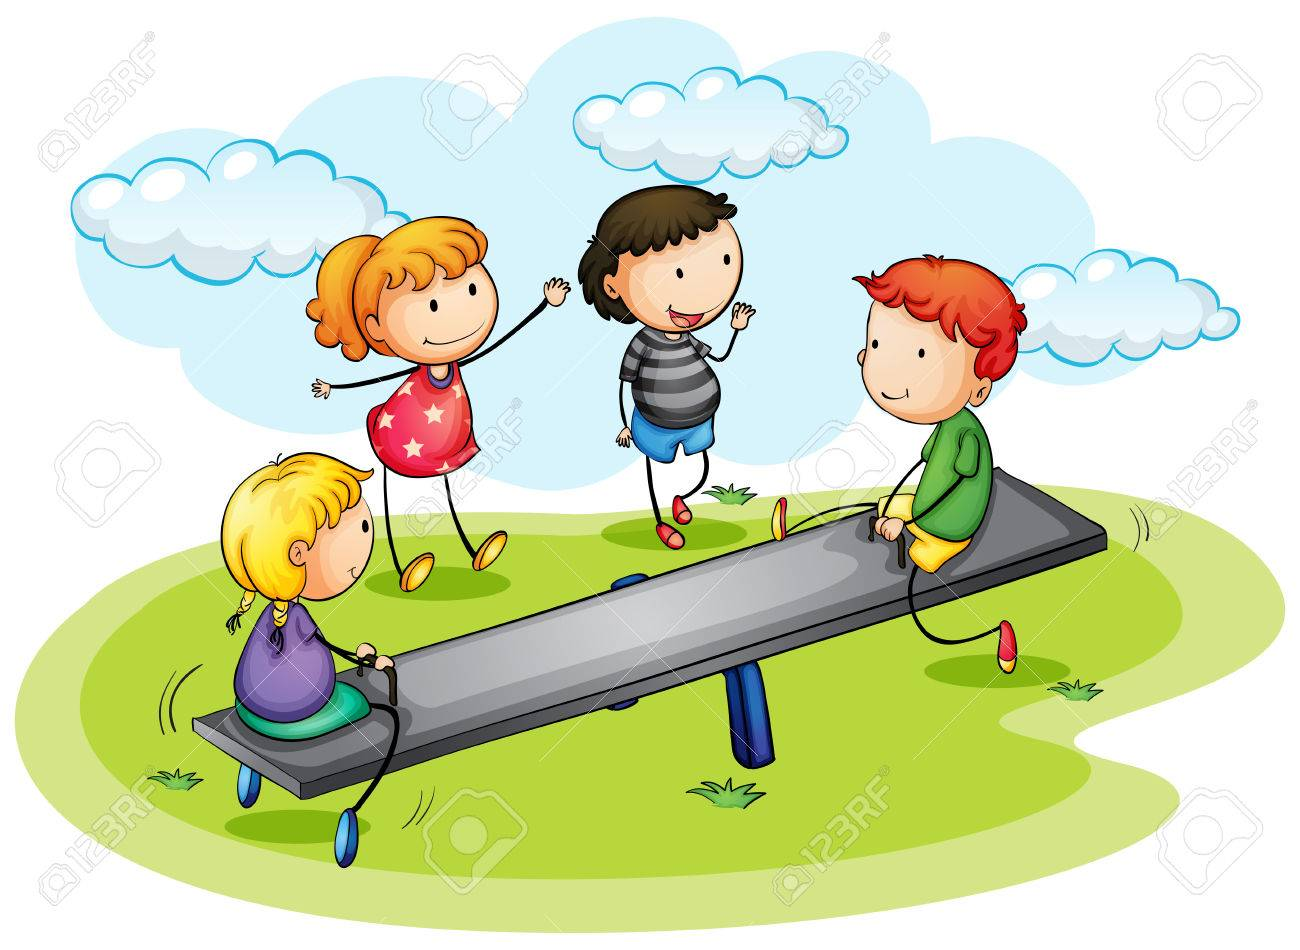 Youth Play Cliparts Free Download Clip Art.